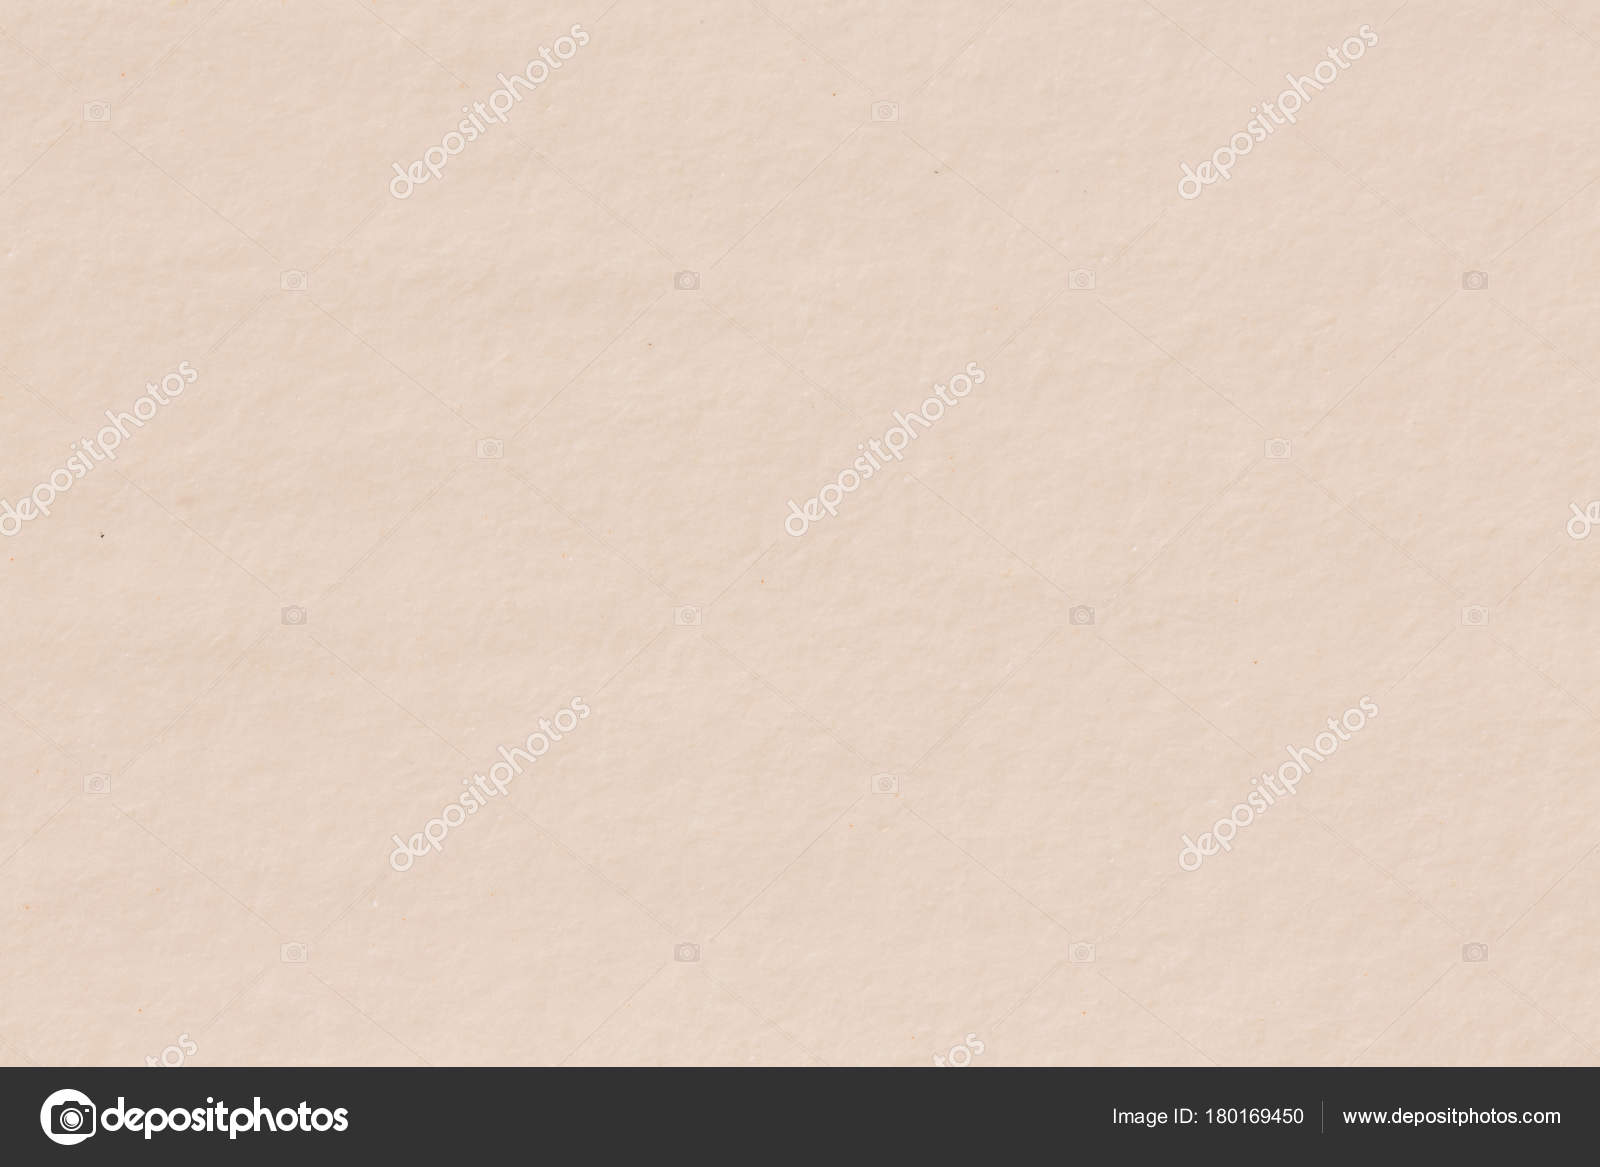 A Warm Toned Off White Paper Background With Finely Textured Swirling Thread Texture High Resolution Photo By Yamabikay